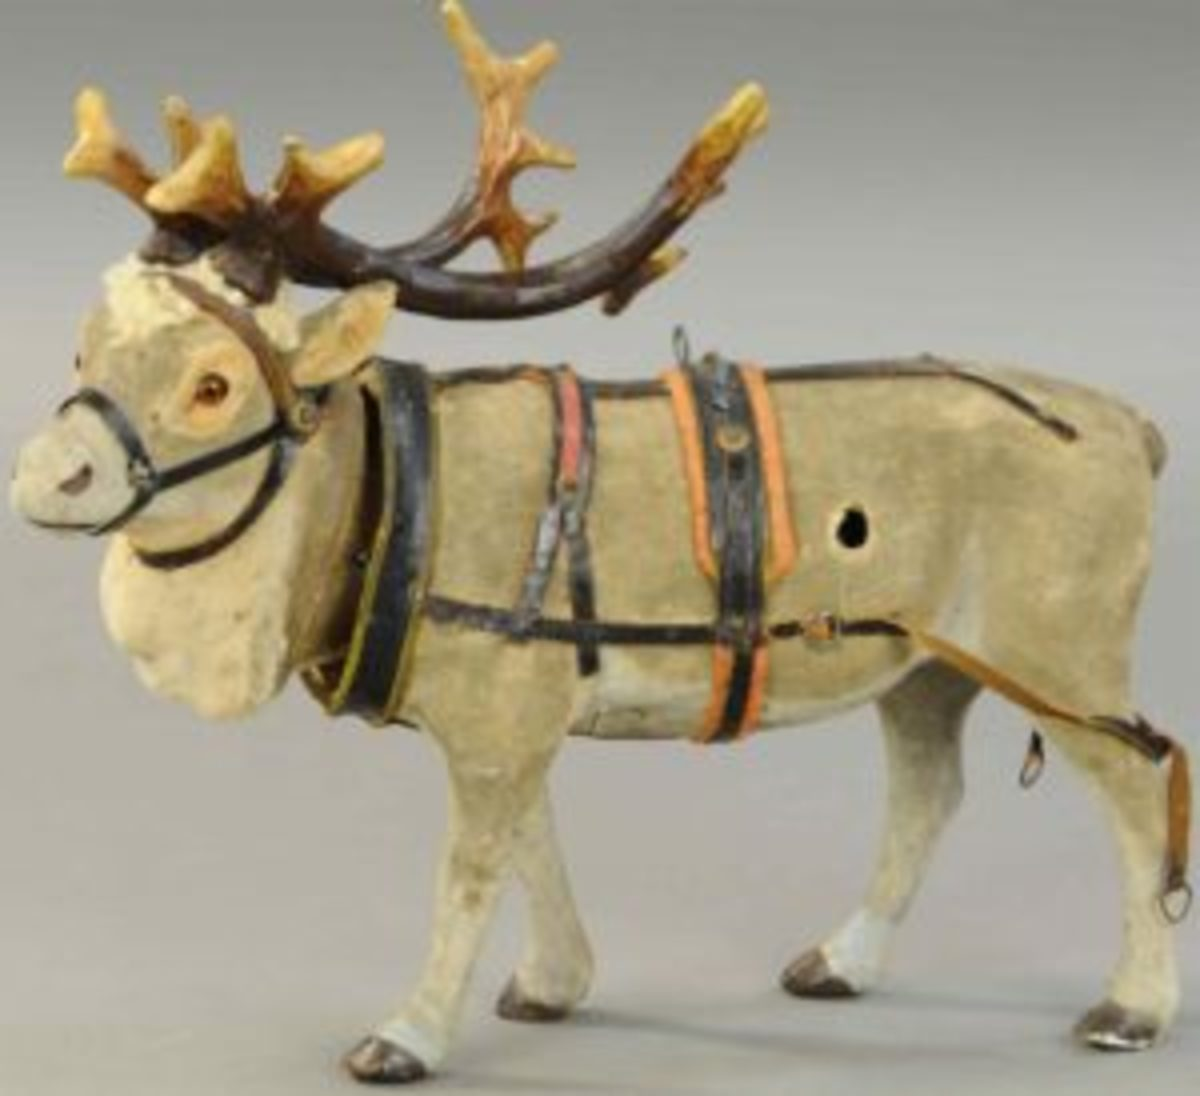 "This nodding reindeer sold for $9,600 at Bertoia's recent auction of the Sam Downey, Jr. collection — nearly three times its high estimate of $3,500. Made in Germany, the reindeer has brown glass eyes, composition antlers, full leather harness and collar, and is ready to pull Santa's sleigh. This is a hard-to-find example in good working order; 12"" h."